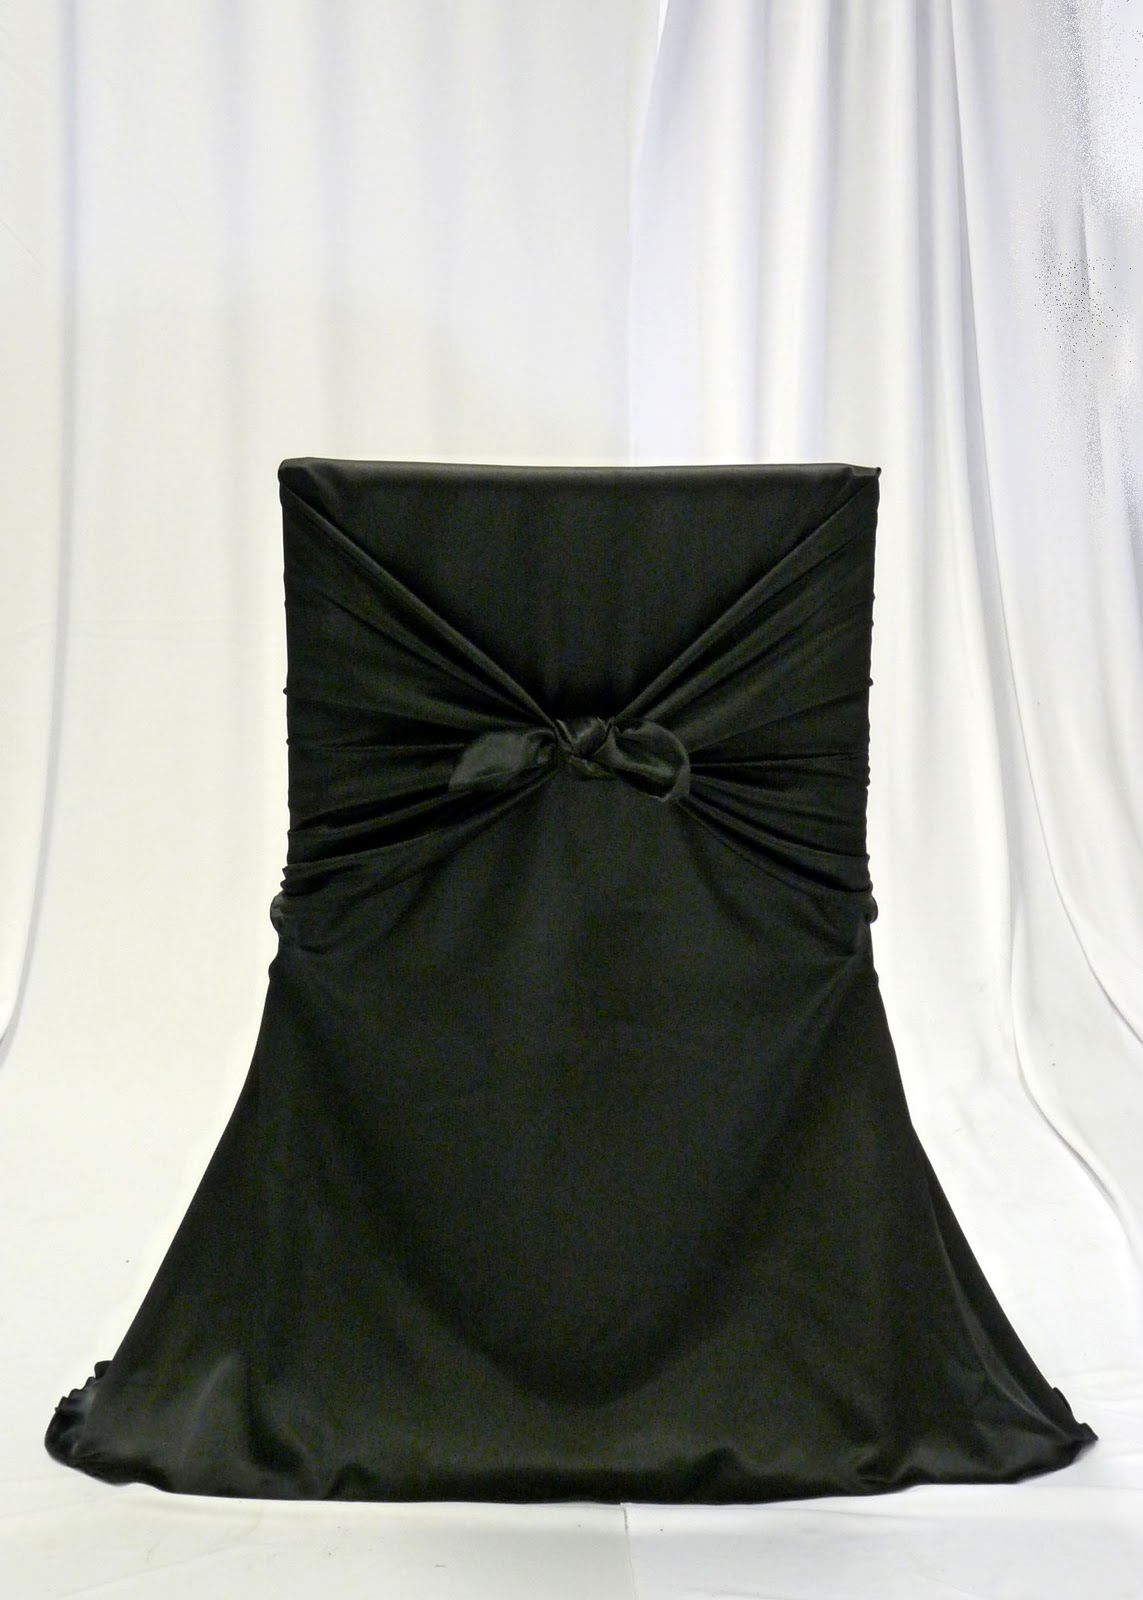 Chair Covers For Rent Toronto Steel Joints Decor Cover